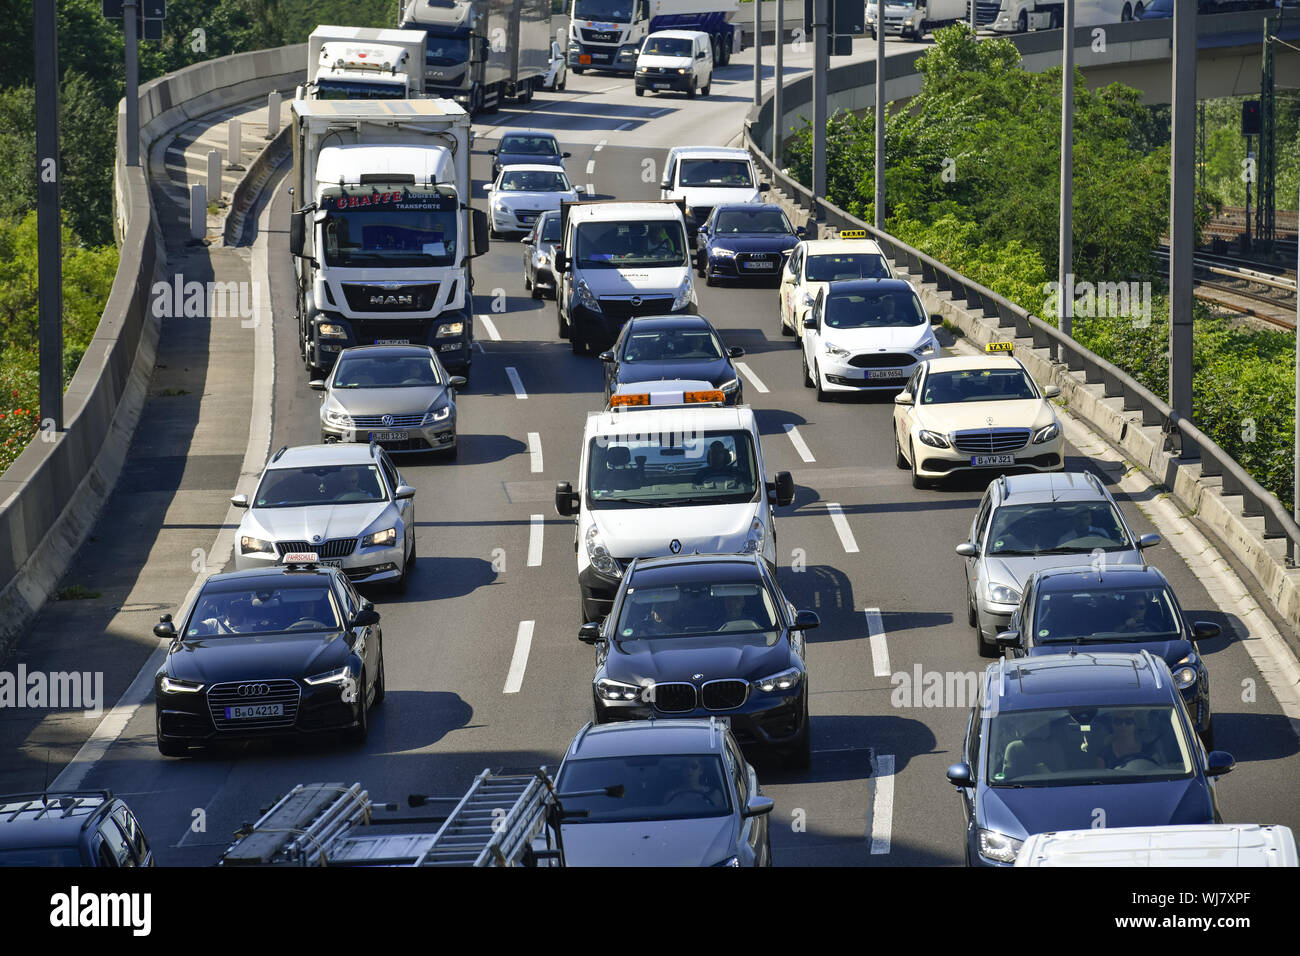 Car, highway, cars, motor traffic, Berlin, Charlottenburg-Wilmersdorf, Germany, town highway, town ring, traffic jam, stops, street, street, traffic, Stock Photo